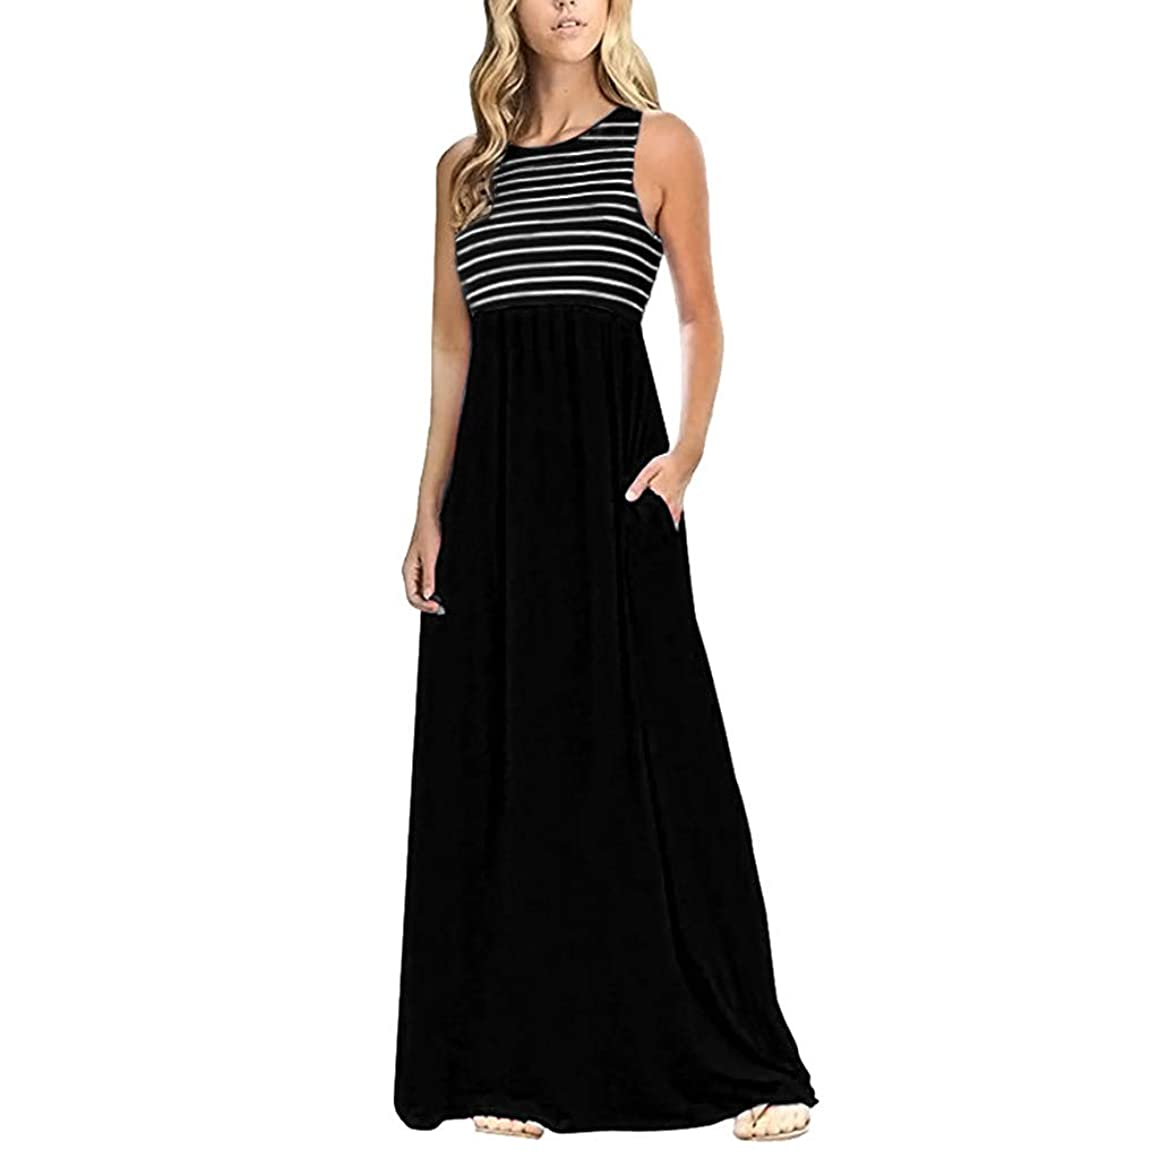 Miuye Maxi Dresses for Women Striped Sleeveless Crew Neck Party Dress Simple Long Cocktail Dresses with Pockets